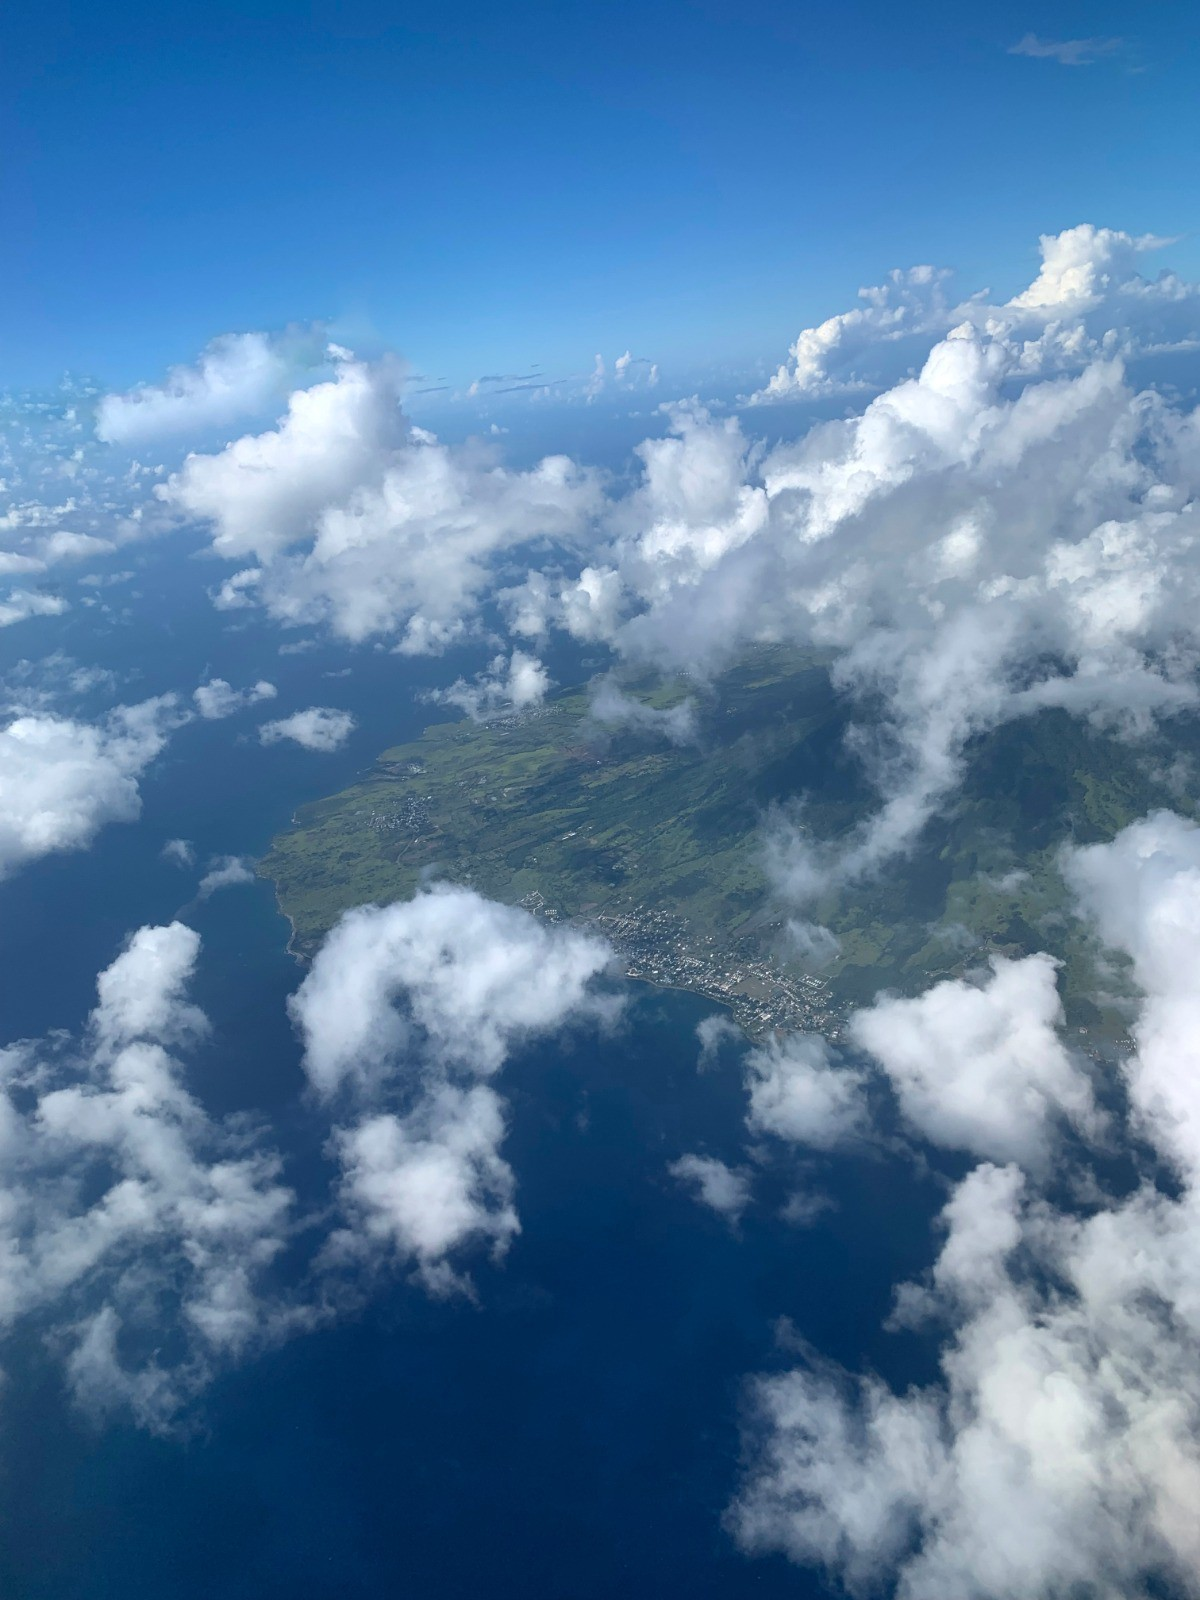 an image of a small island taken from an airplane